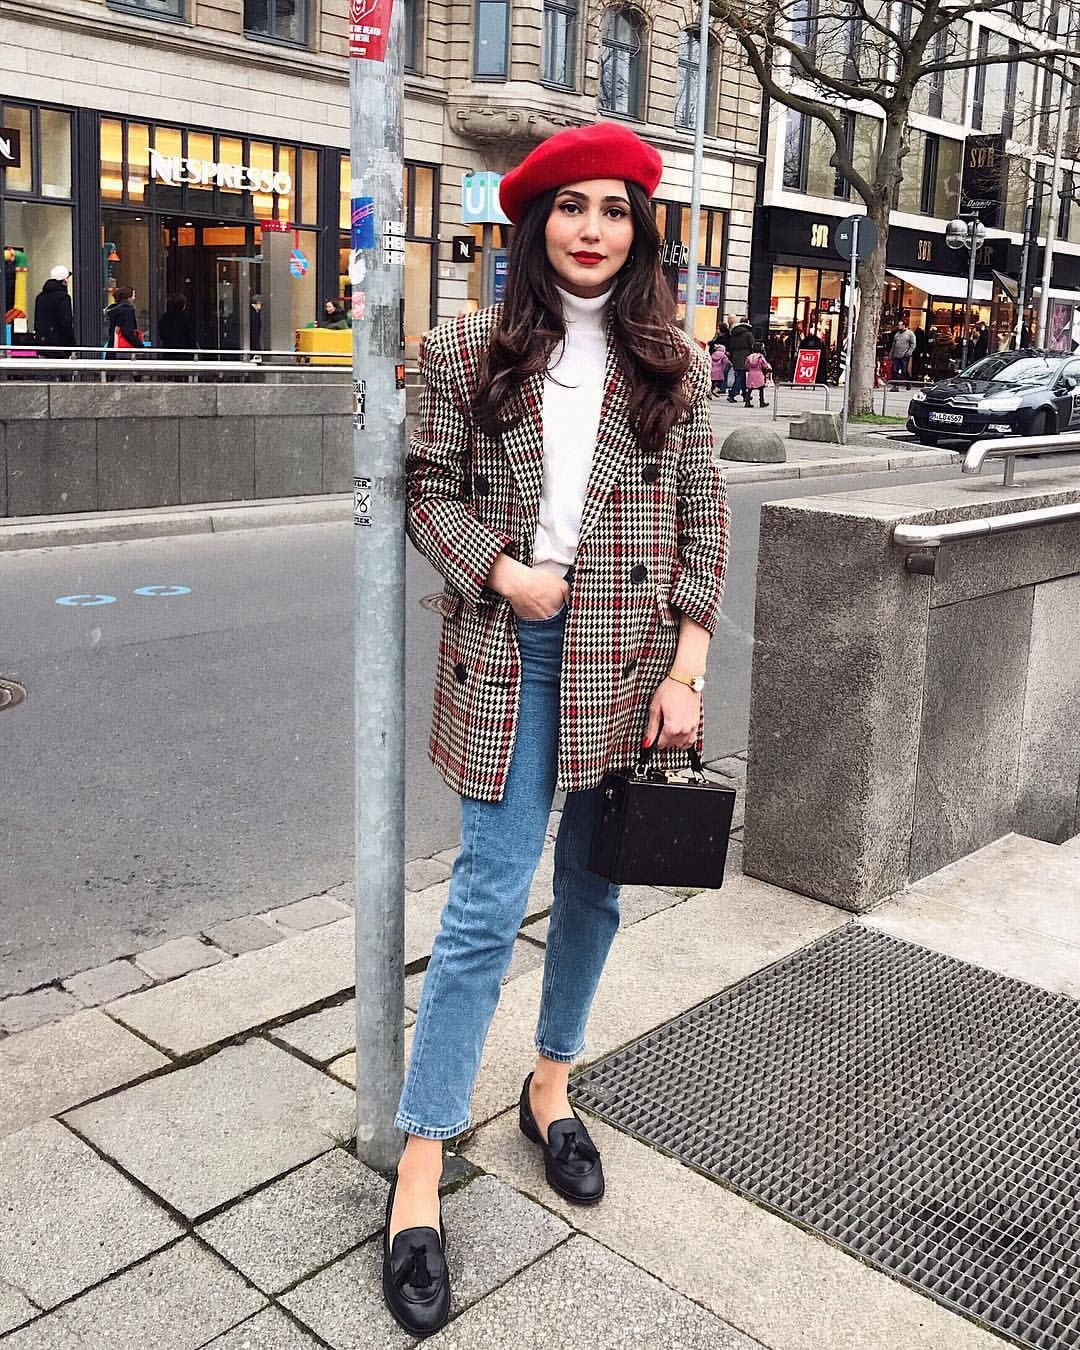 Beret and blazer outfit, street fashion, plaid blazer, trench coat, red beret